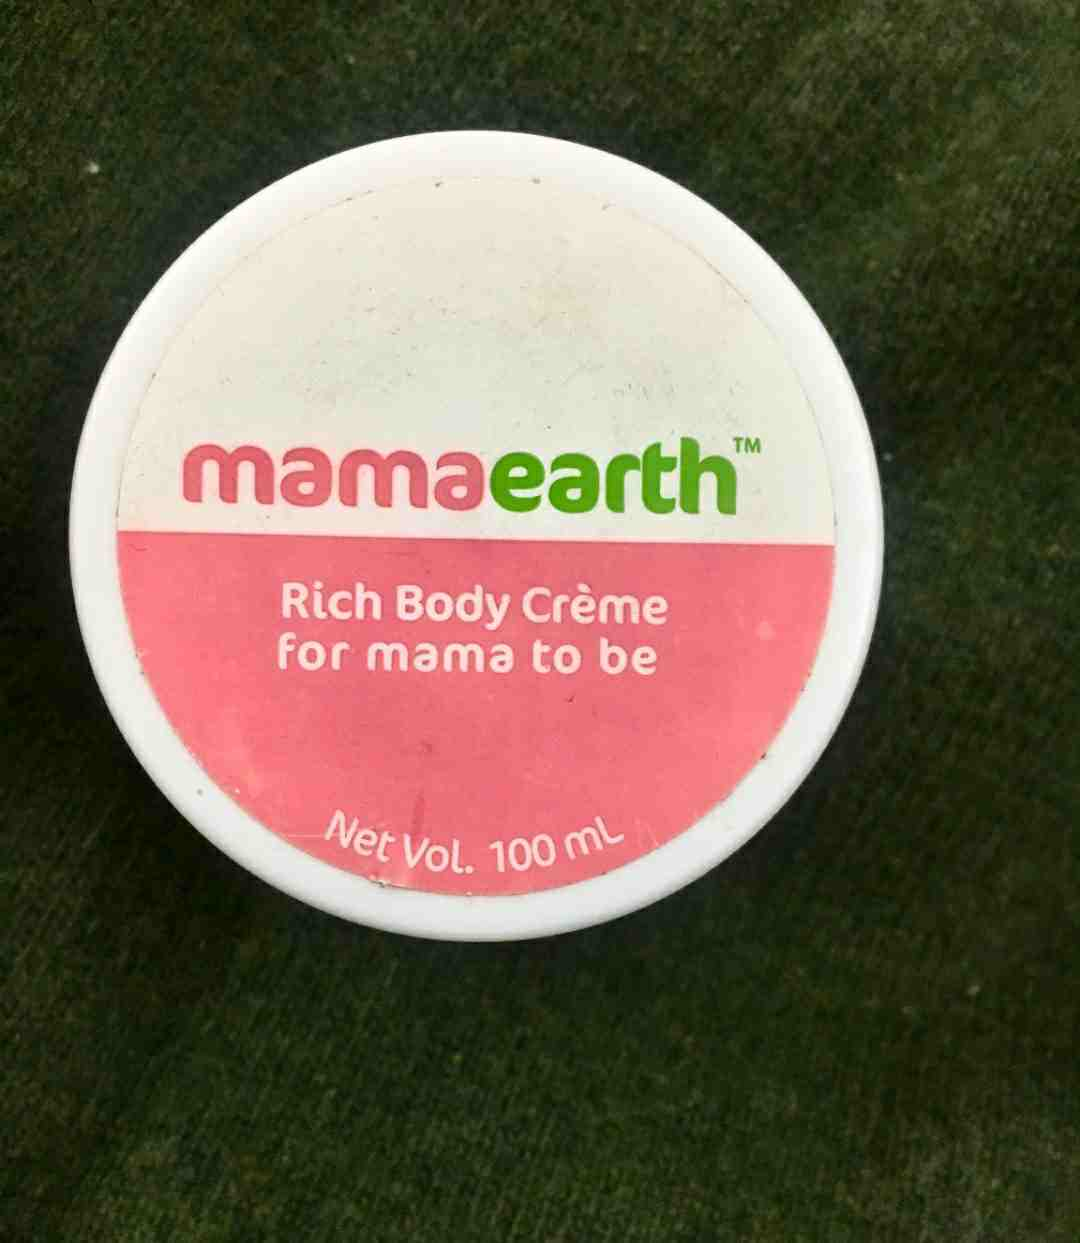 Mamaearth Body Cream For Stretch Marks Review